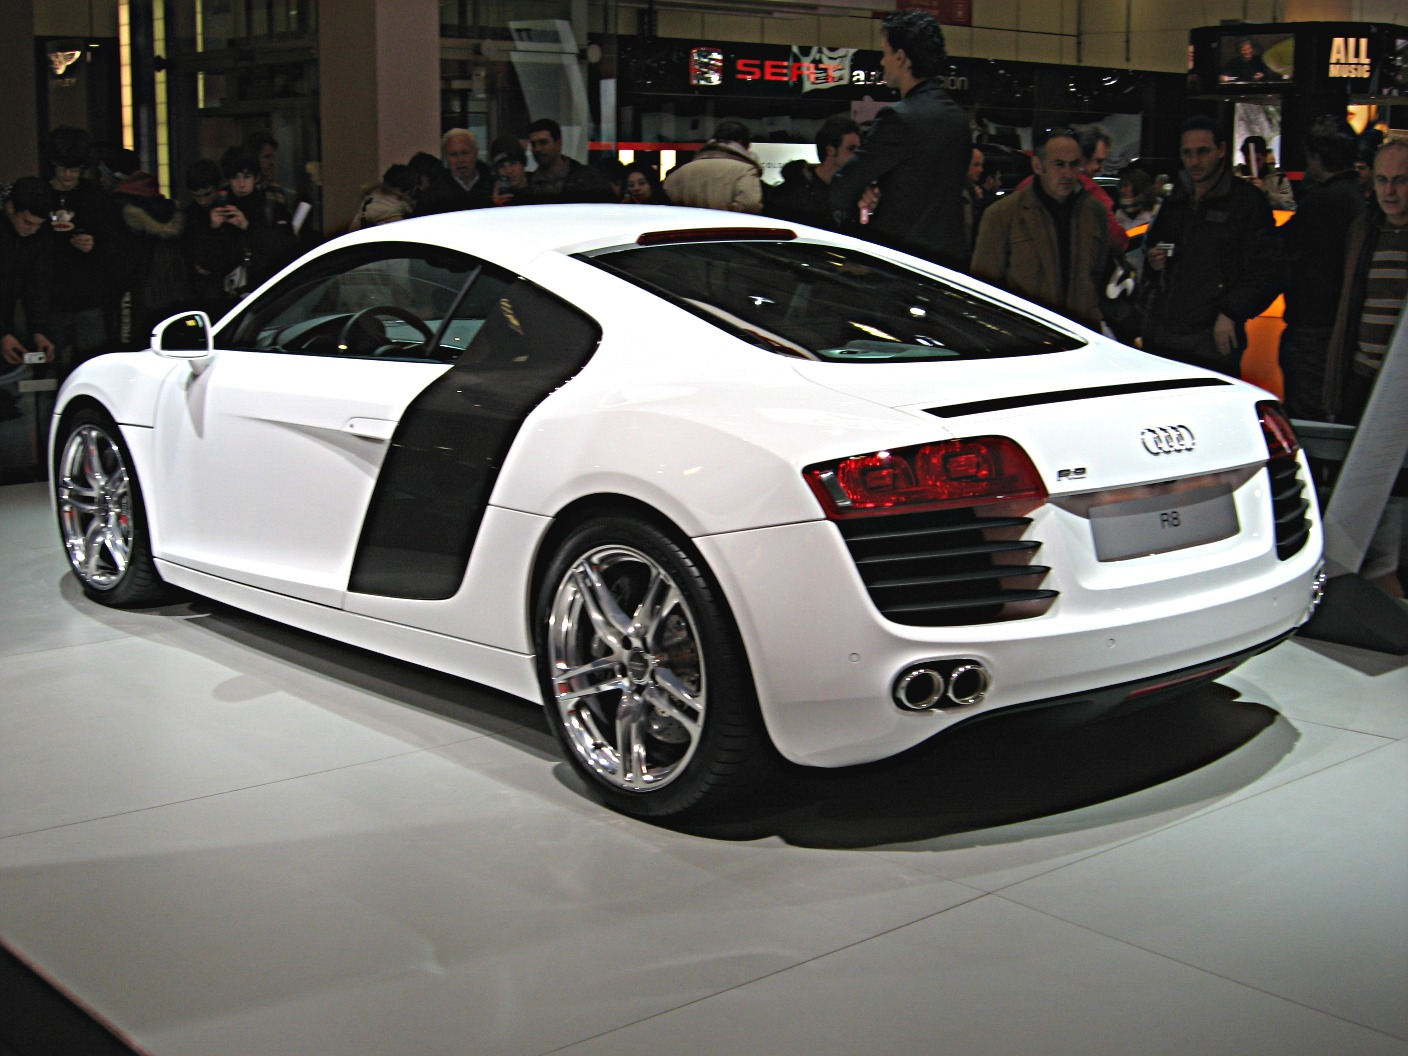 FileAudi R8 RearviewJPG  Wikimedia Commons